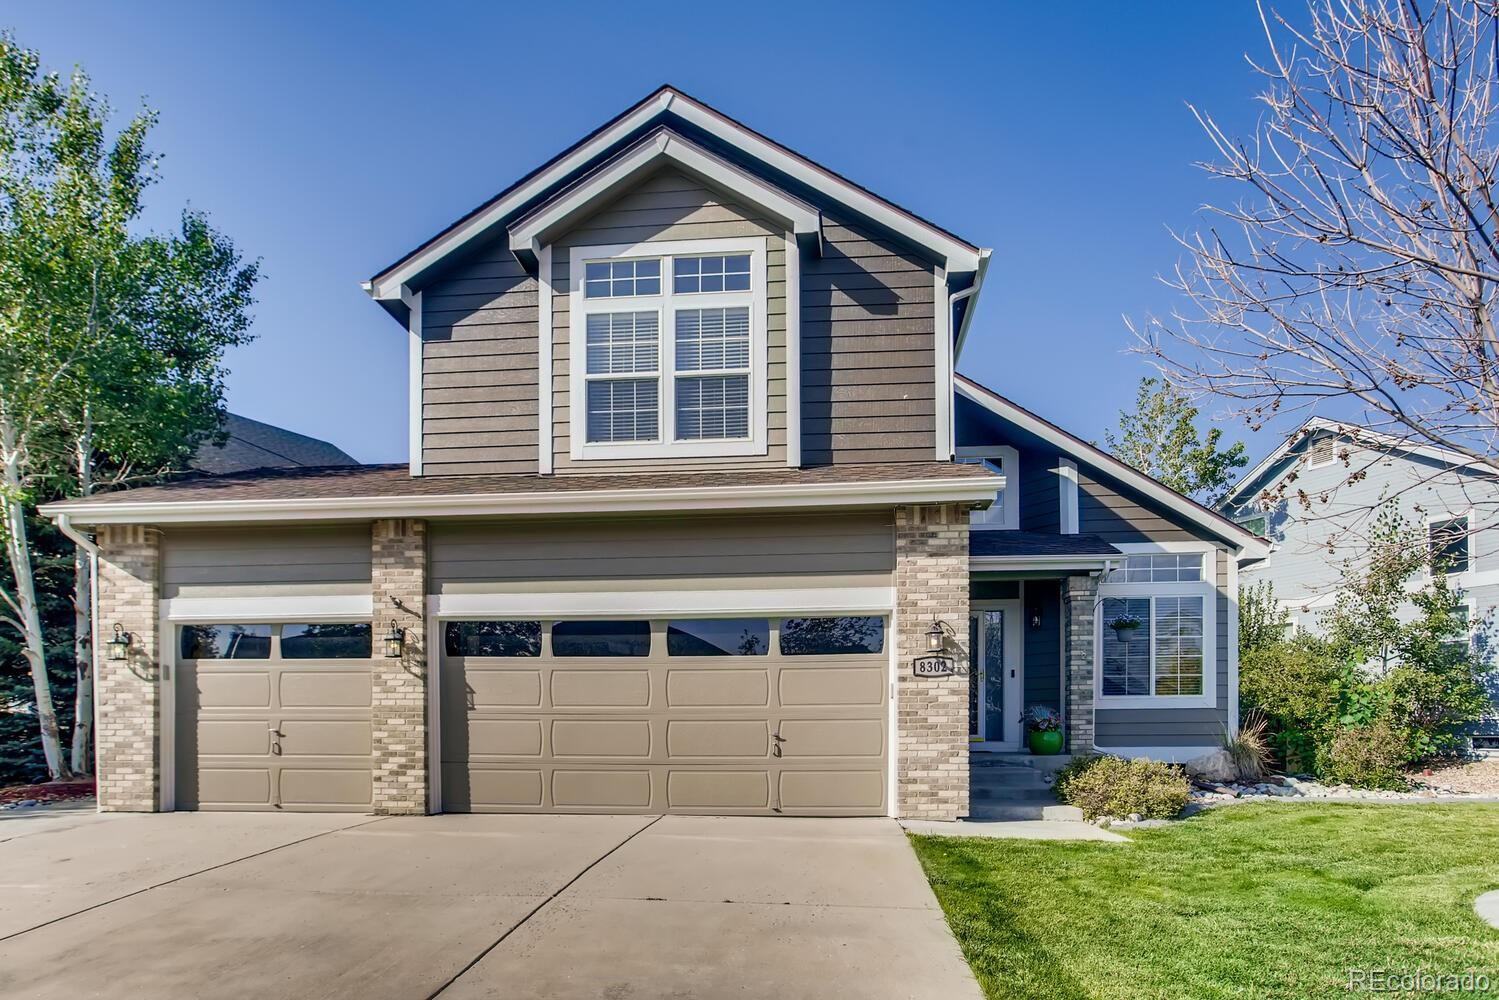 8302 Dove Ridge Way, Parker, CO 80134 - #: 5527361